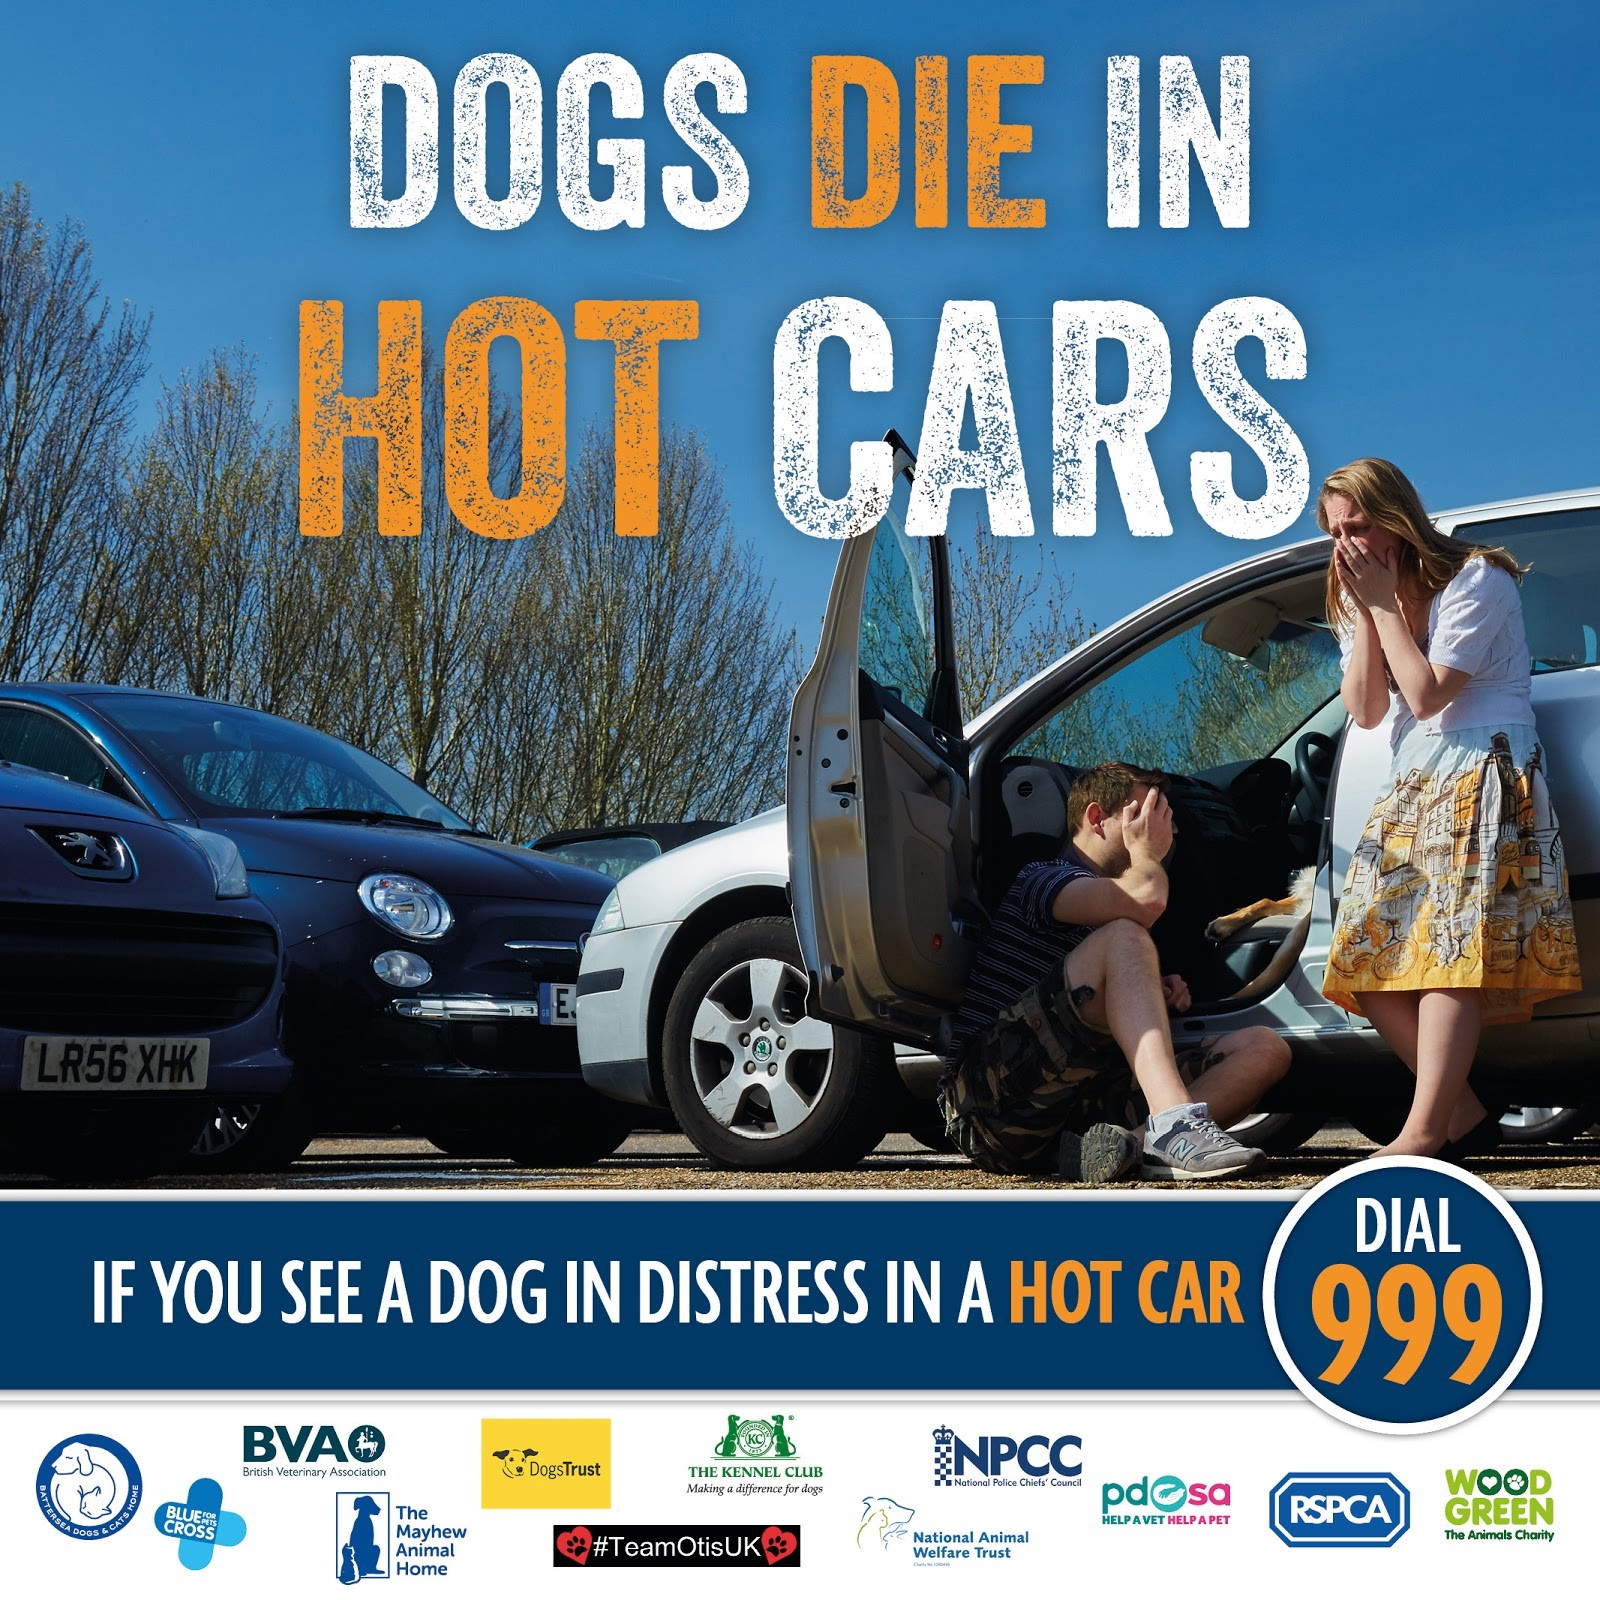 Dogs Left In Cars On Hot Days